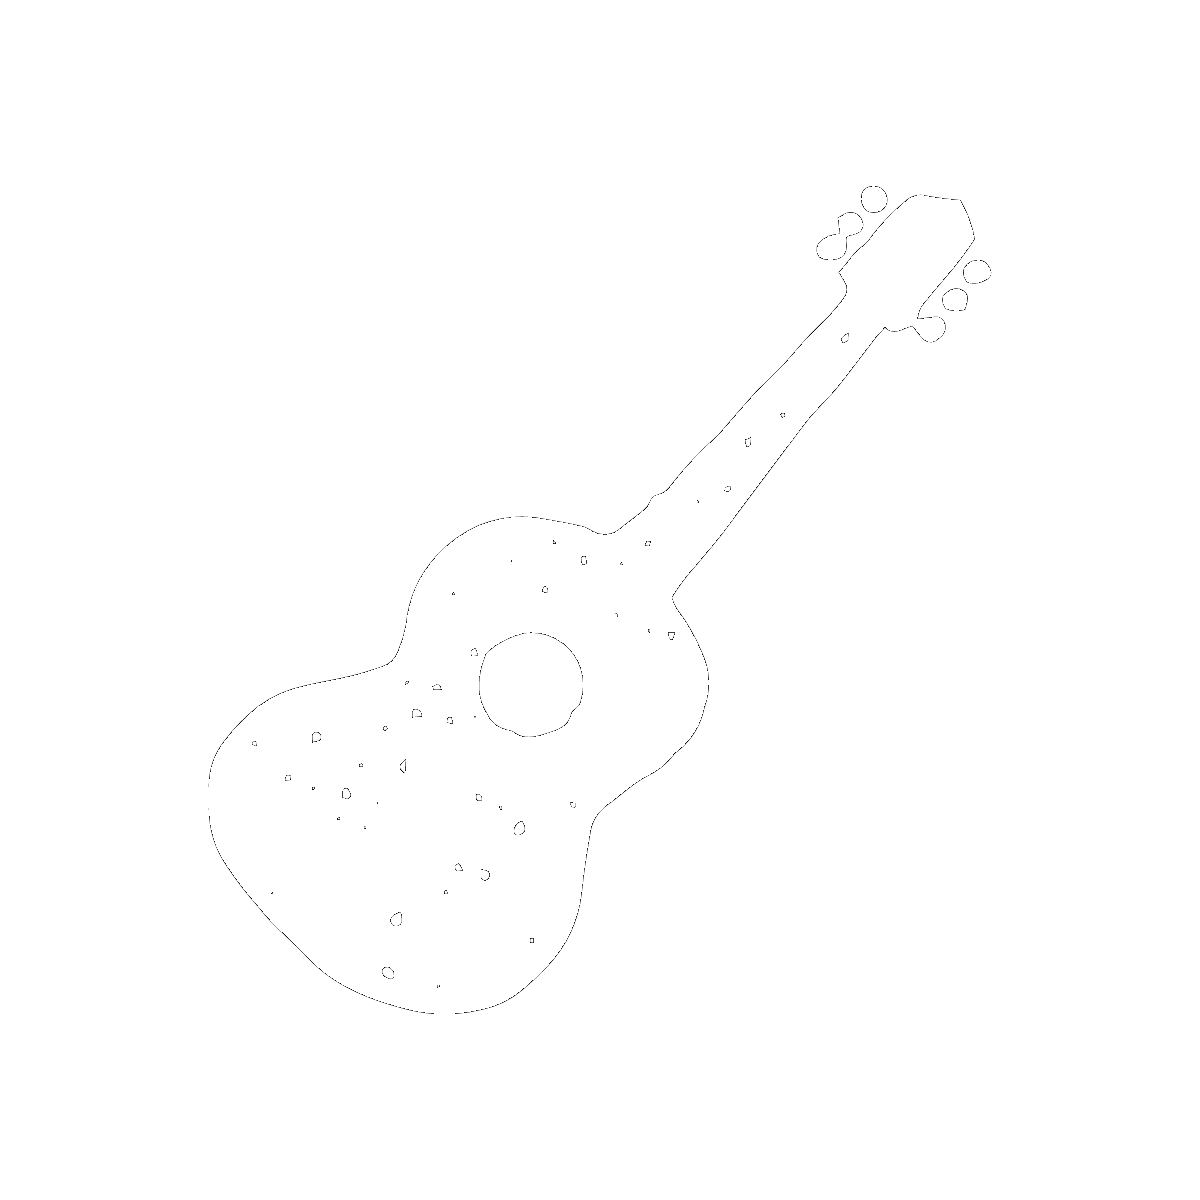 Symbol The Guitar and Bust of Shakespeare